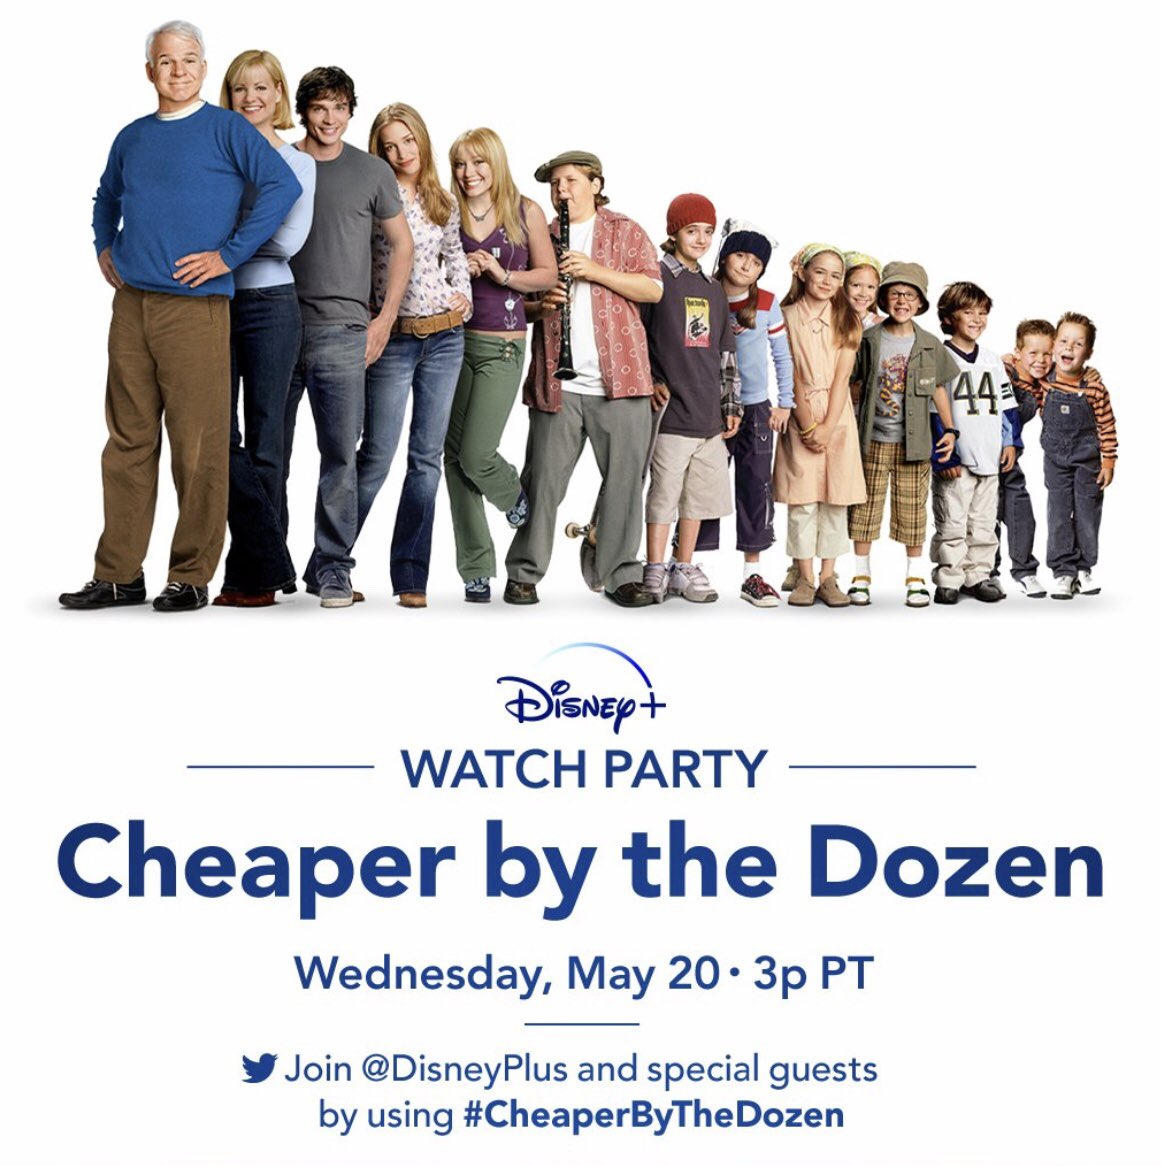 ♥️! Cheaper by the Dozen Watch Party today @disneyplus #StreamingDay join by using #cheaperbythedozen